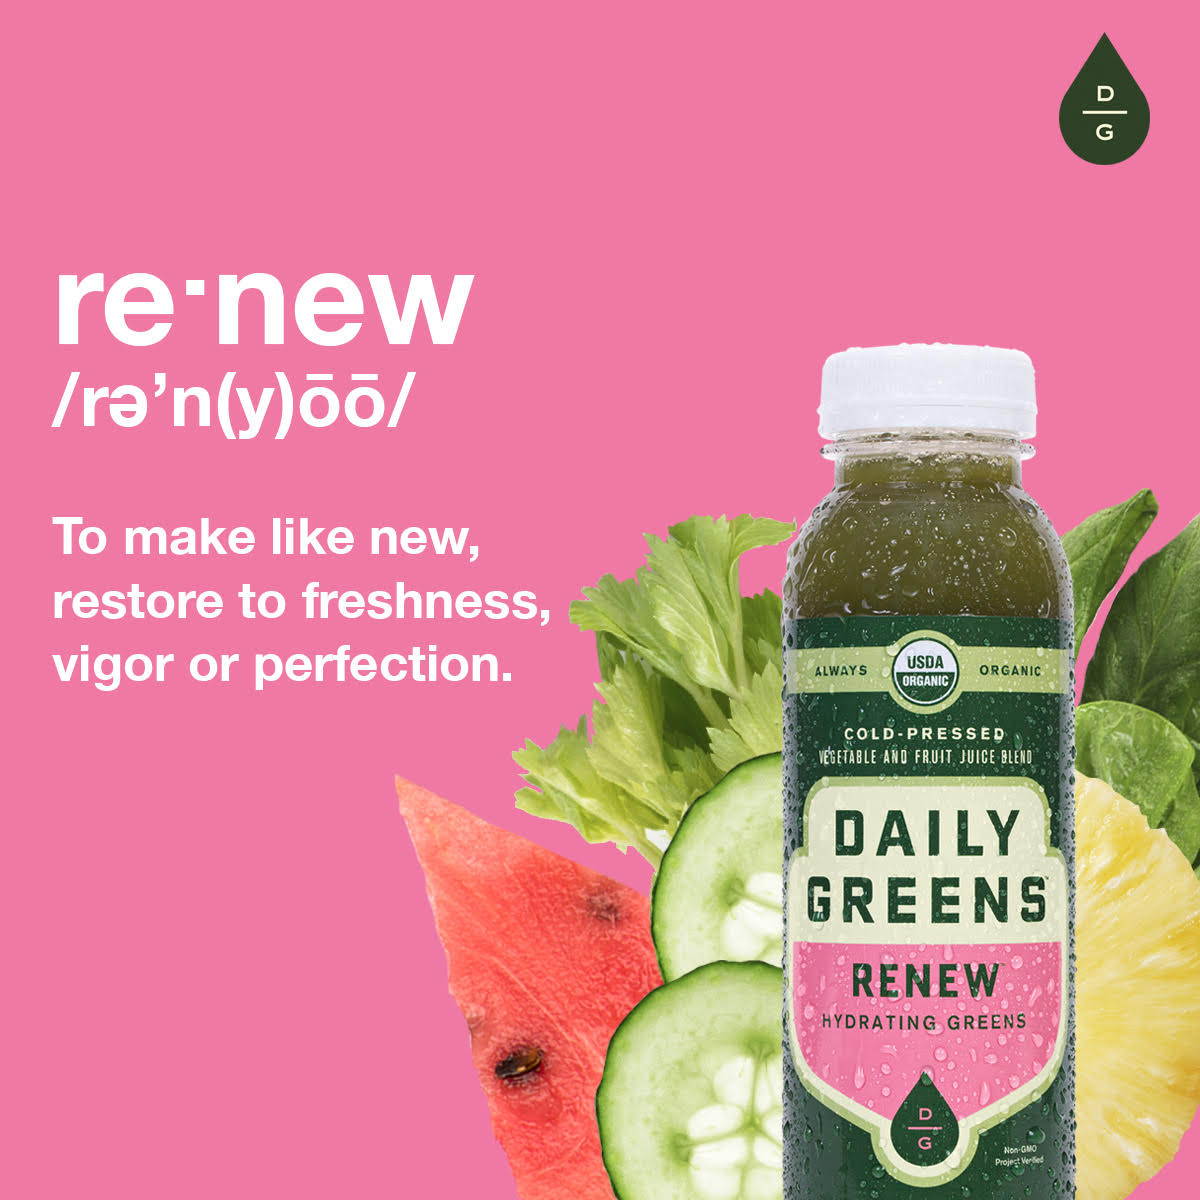 Daily Greens Cold-Pressed Organic Juice